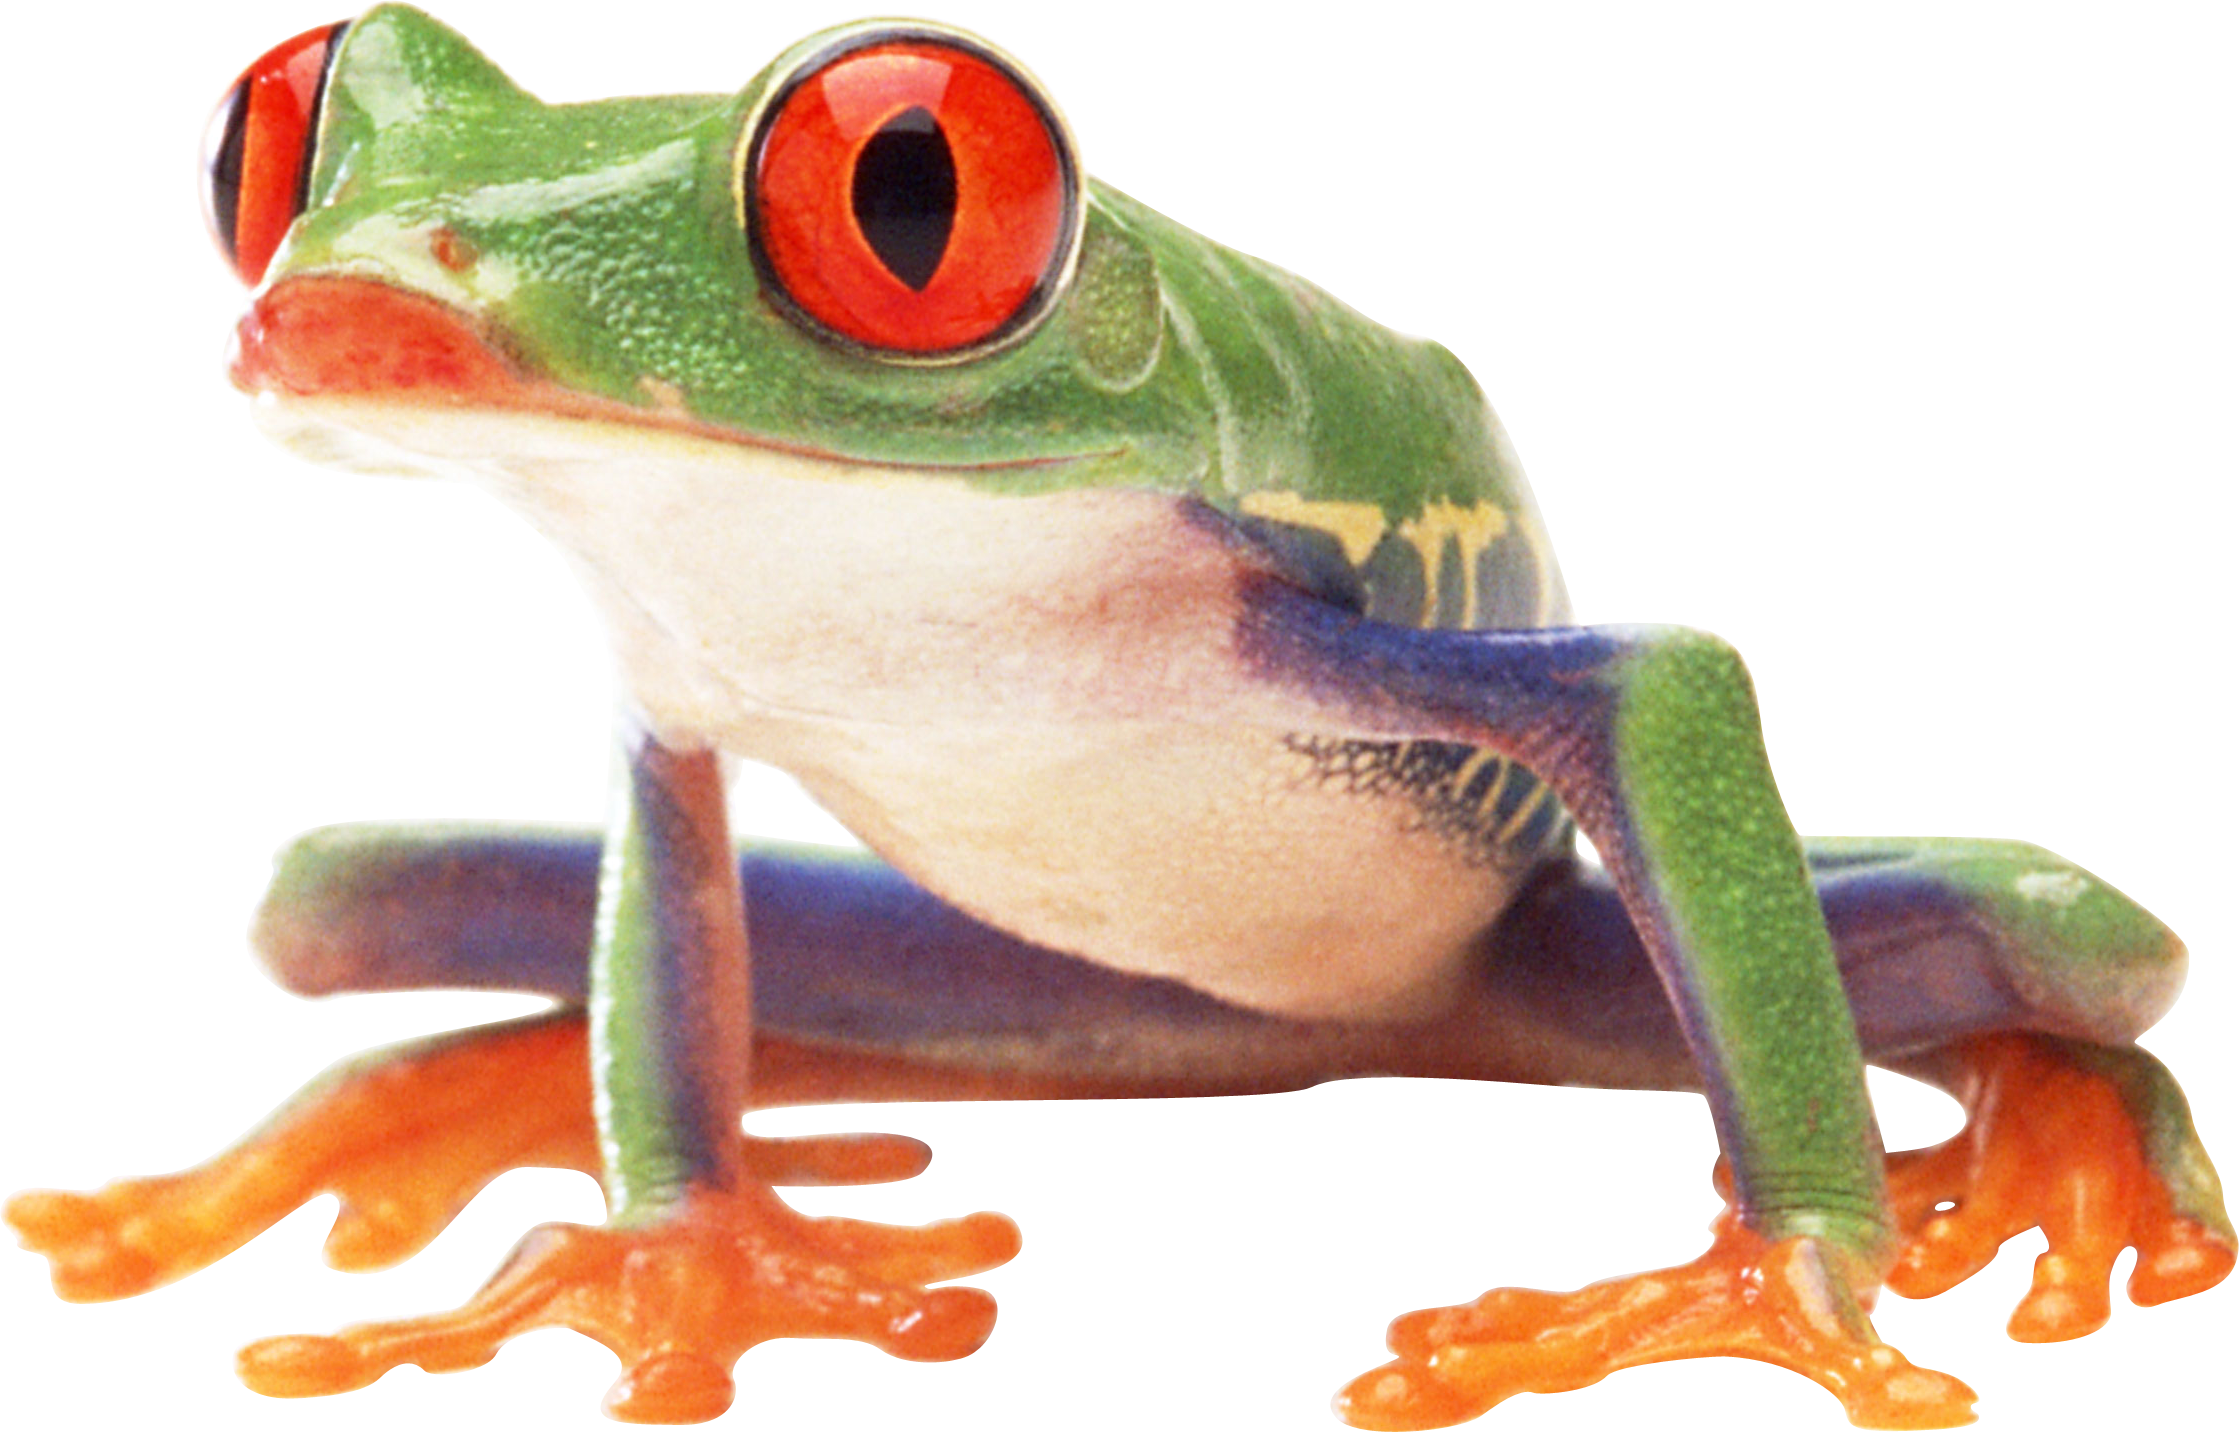 frog PNG image image with transparent background (With